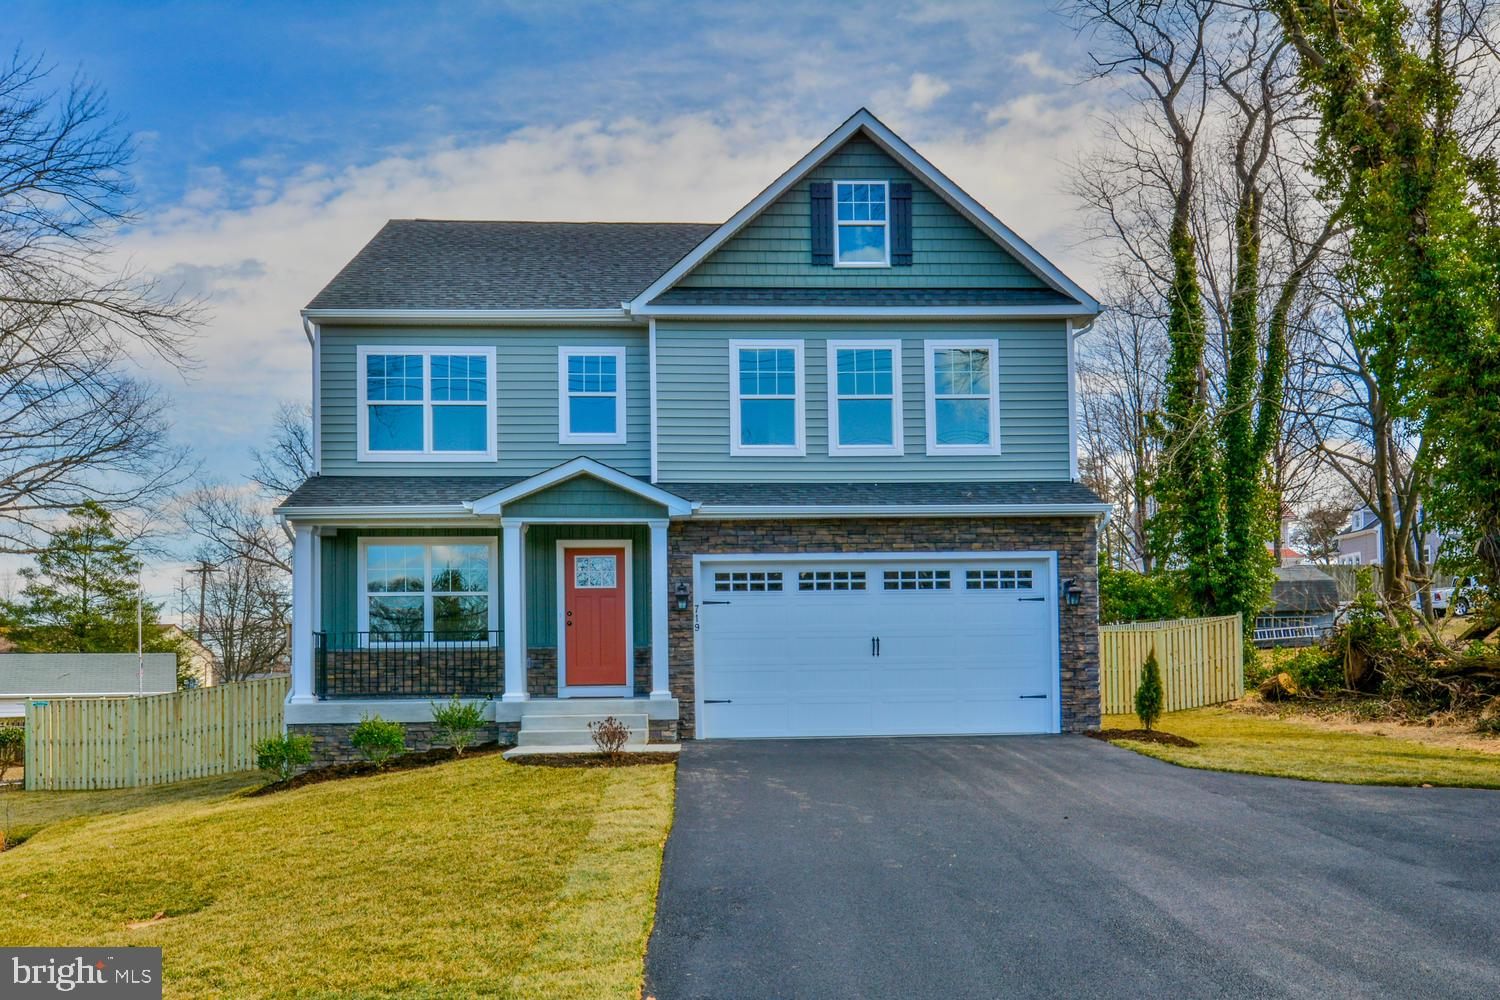 719 S HAMMONDS FERRY ROAD, LINTHICUM HEIGHTS, MD 21090